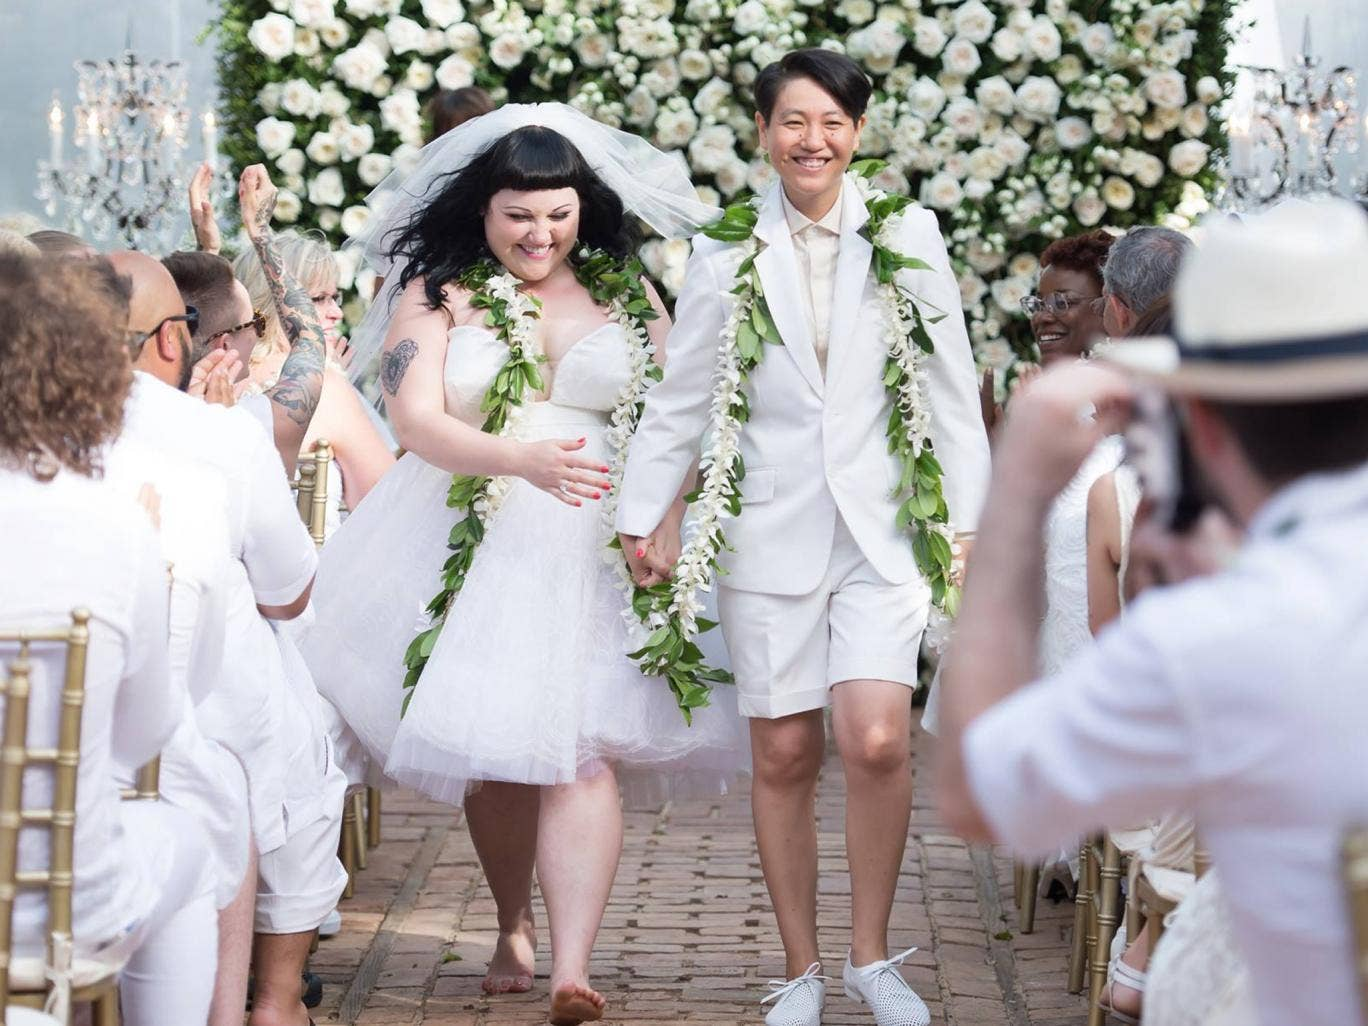 The married couple: Gossip singer Beth Ditto and Kristin Ogata